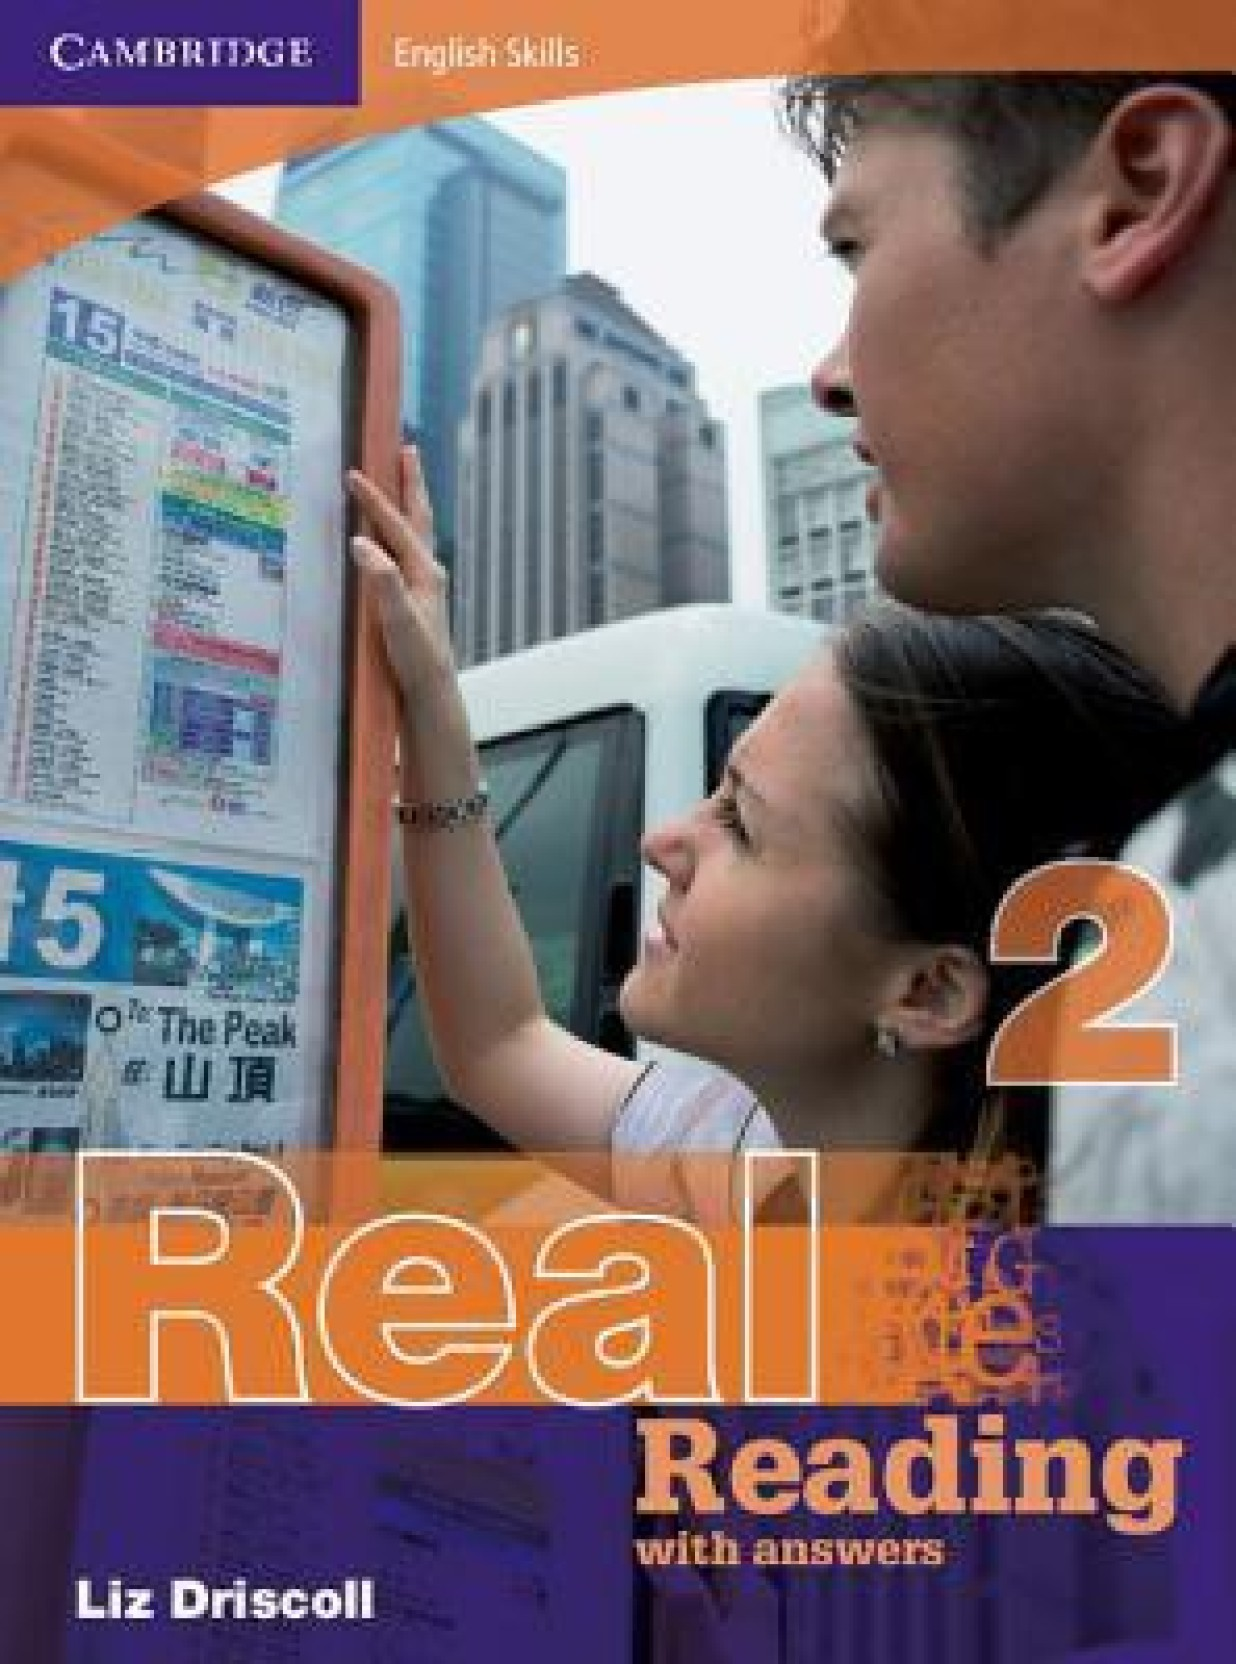 Cambridge English Skills Real Reading 2 with answers: Level 2. ADD TO CART